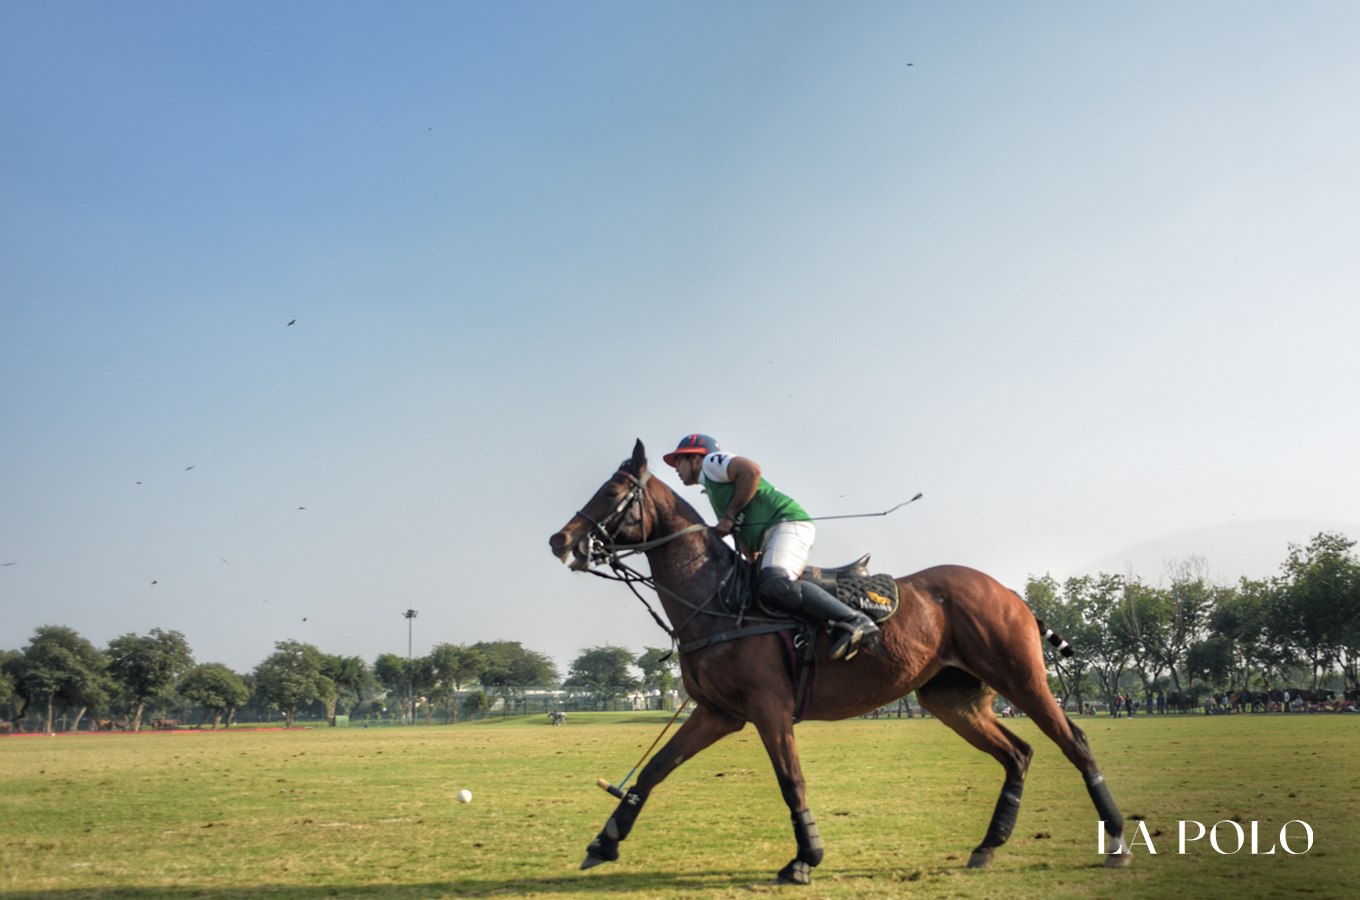 yes bank indian master , sona polo , Rajnigandha Achievers , Palermo Polo,Jindal Panther/Garcha Lions ,Sona Polo, Delhi Polo  Season , jaipur polo ground ,indian polo , polo season , polo season 2018